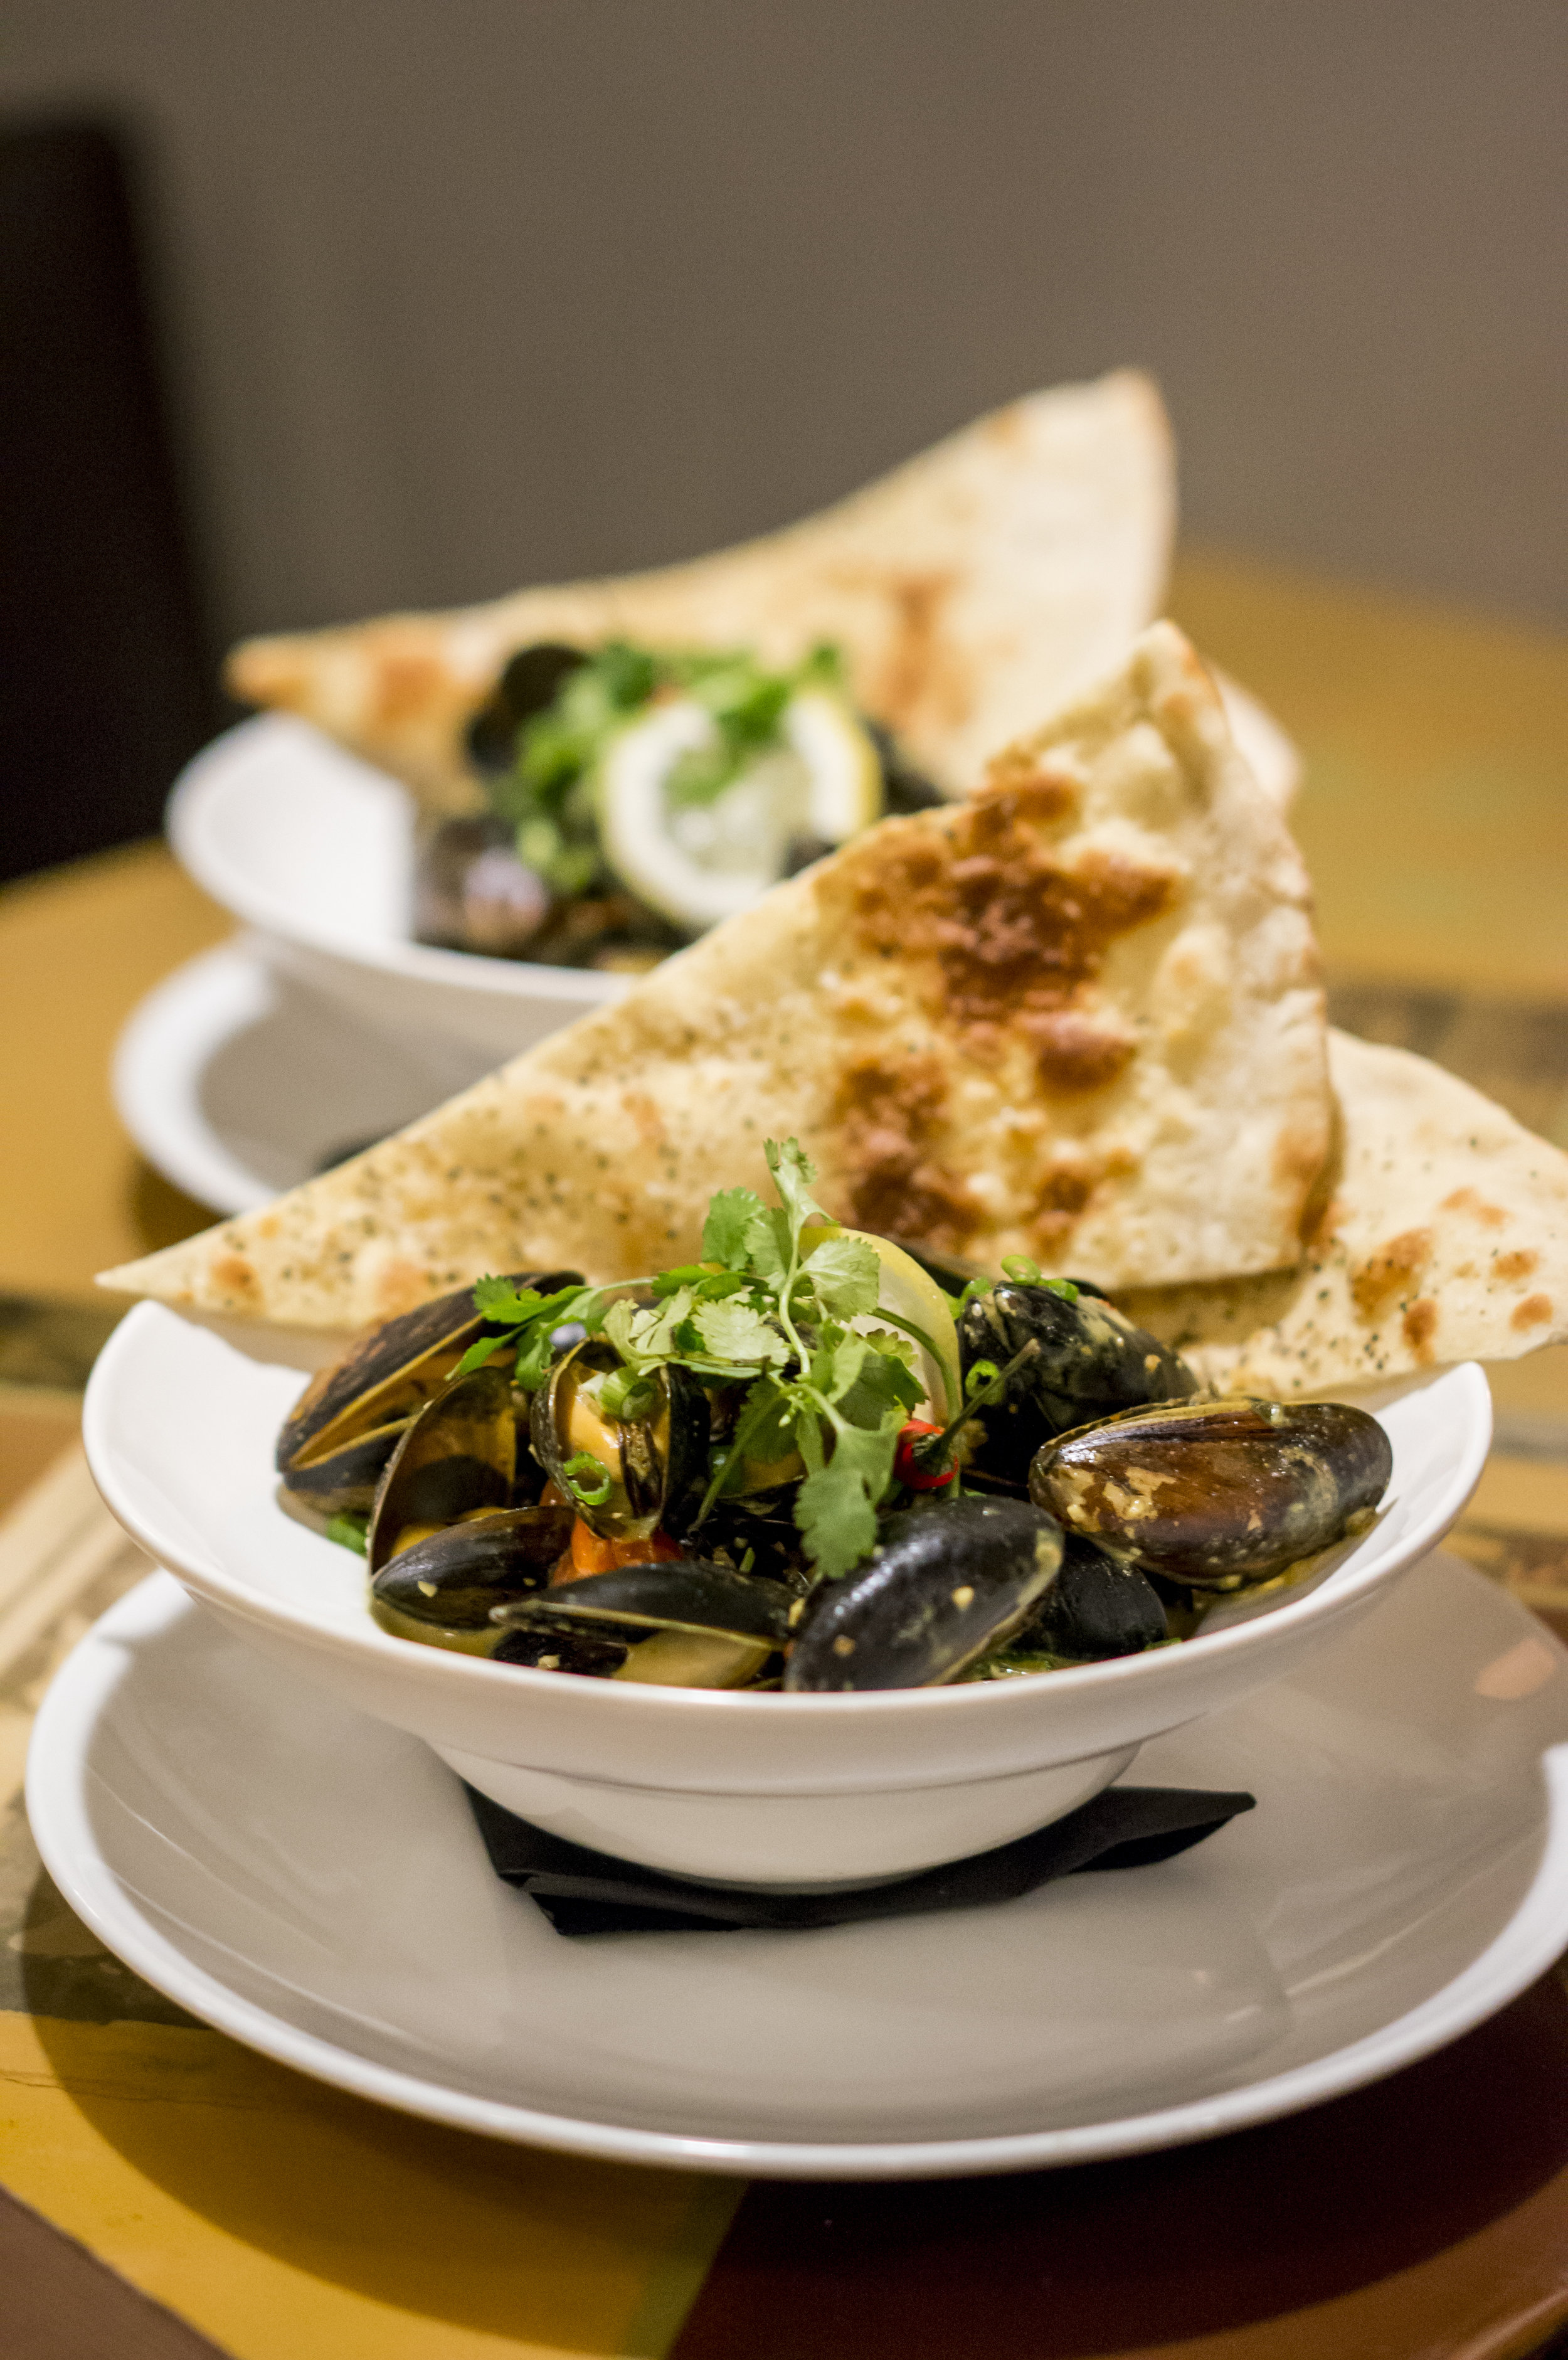 EIGHT 1/2 RESTAURANT  MOUNT PLEASANT 153 E 8TH AVE, VANCOUVER, BC V5T   SPECIALTY MENU ITEM:DELICIOUS MUSSEL HEARTS  FRESH SALT SPRING ISLAND MUSSELS IN WARM CURRY BISQUE WITH HOUSE NAAN.